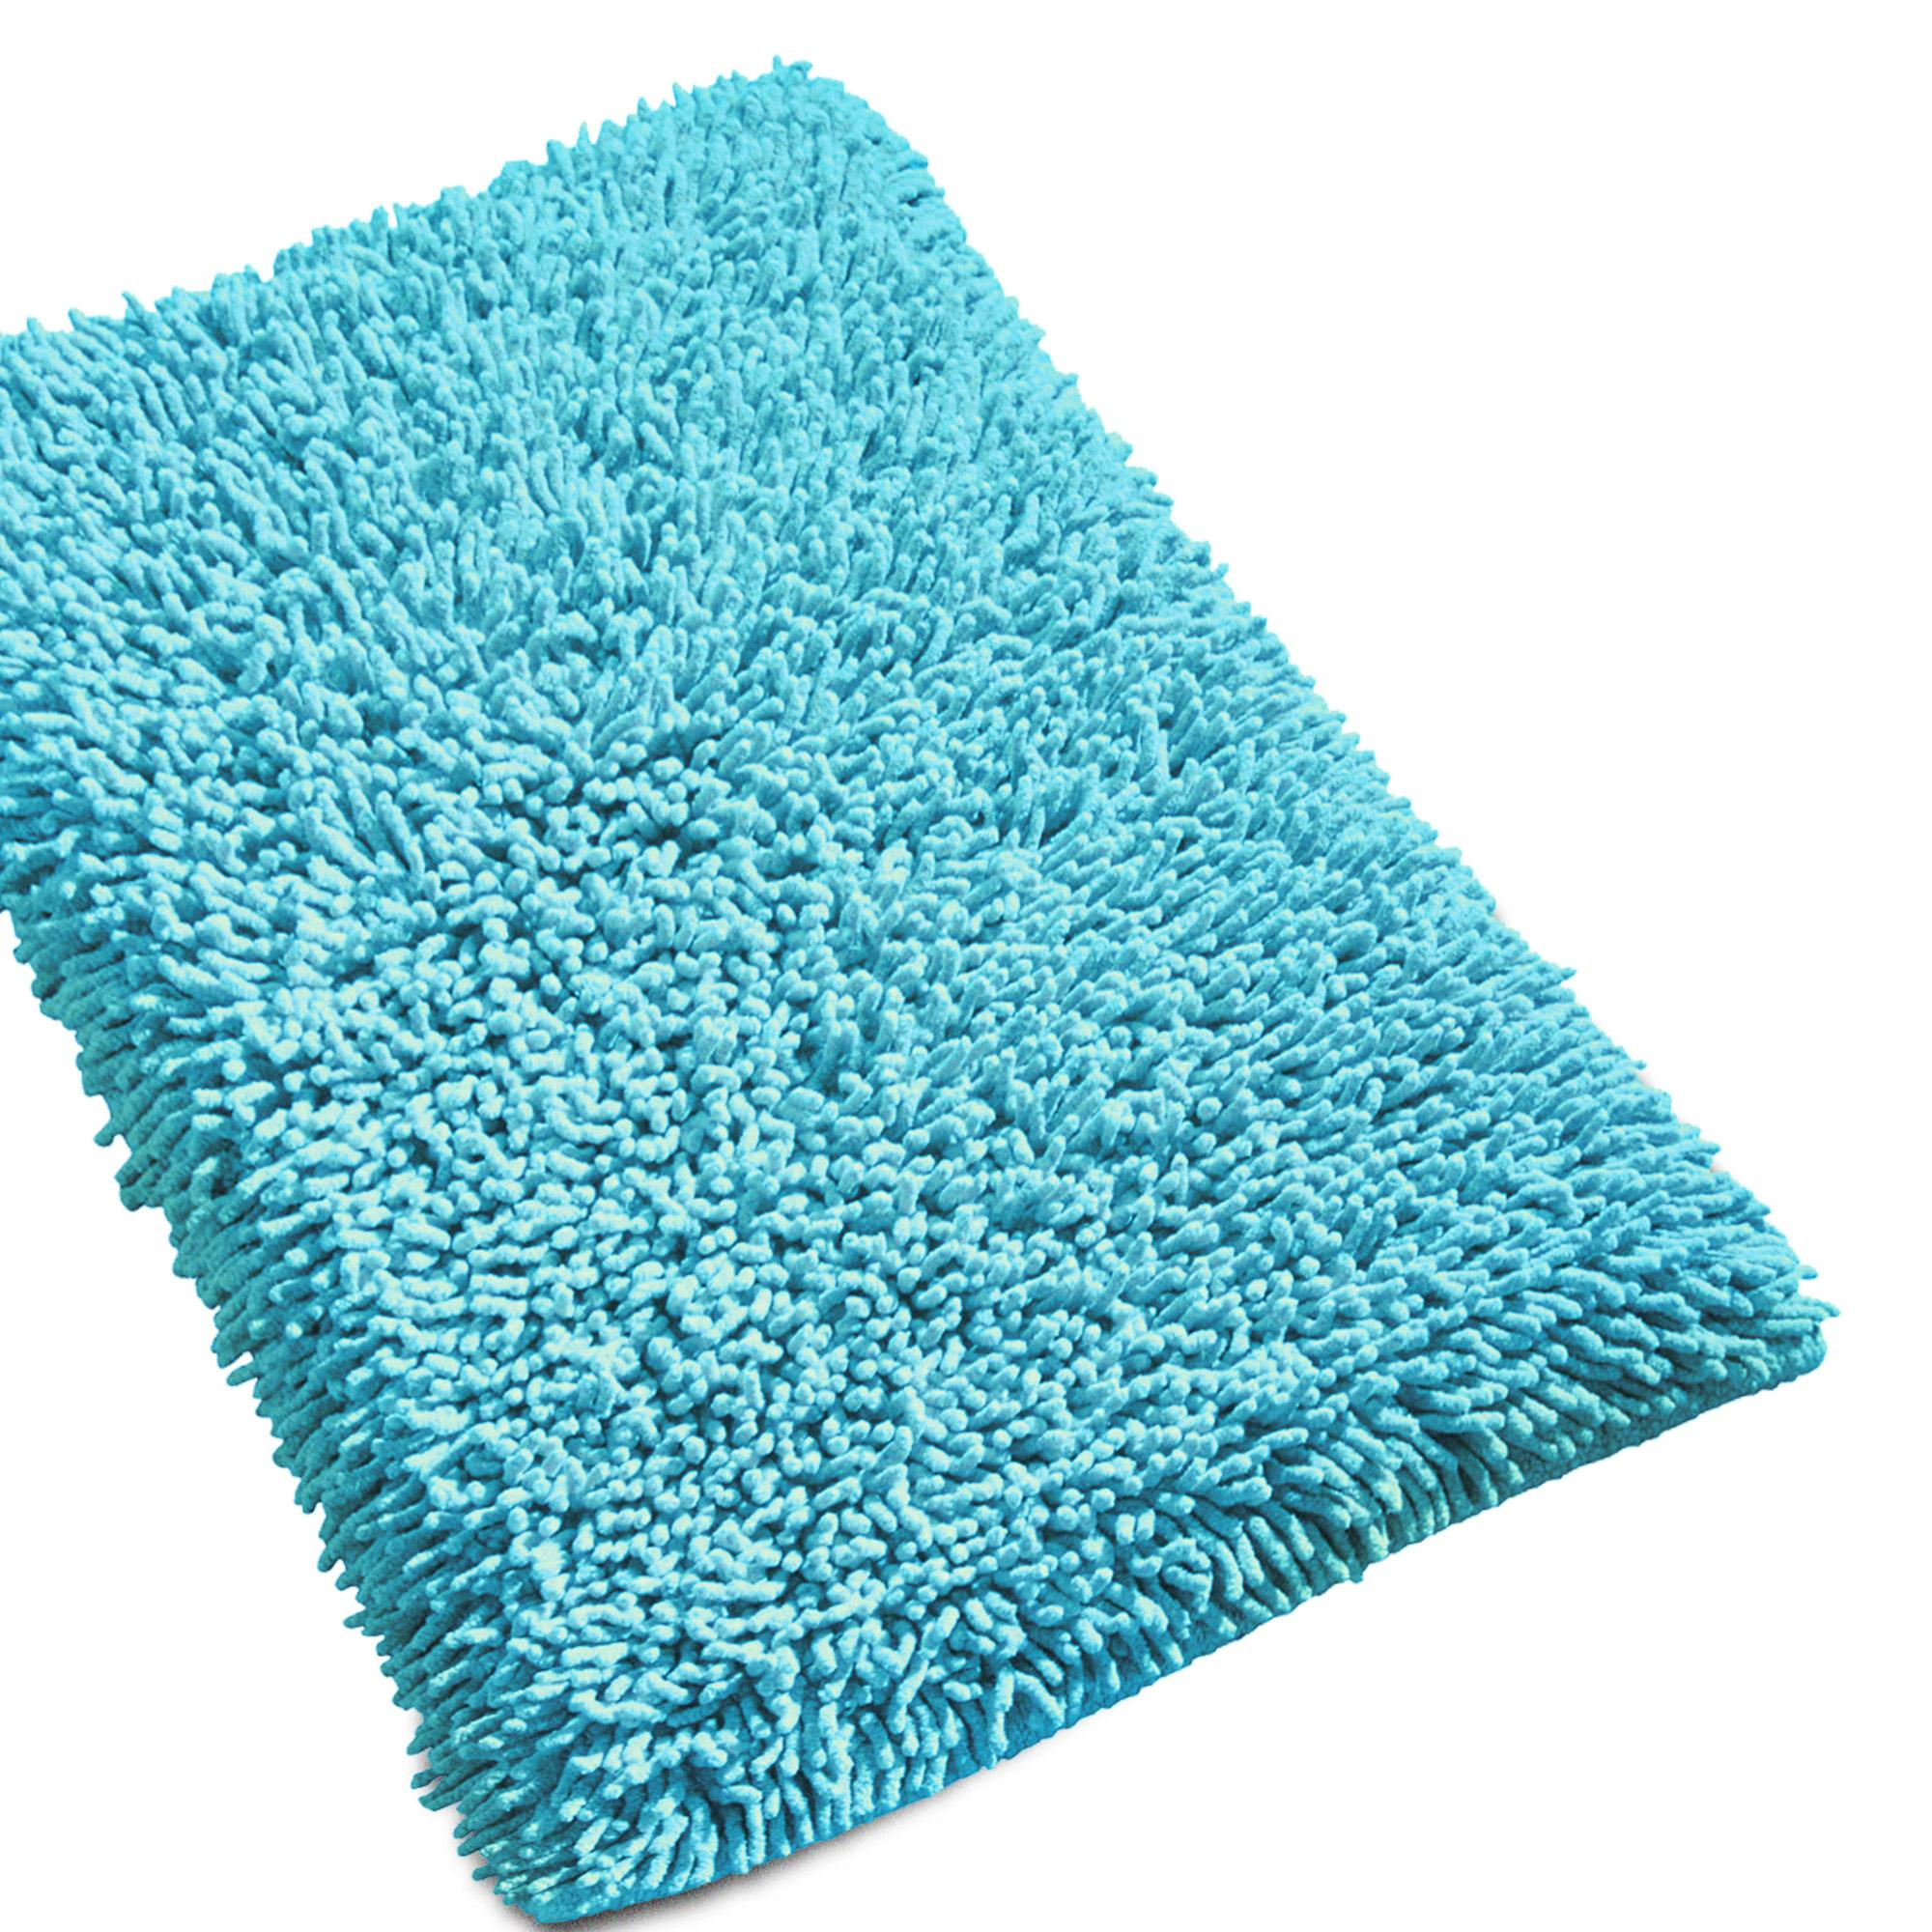 tapis de bain 50x80 chenille turquoise 1800g m2 ebay. Black Bedroom Furniture Sets. Home Design Ideas